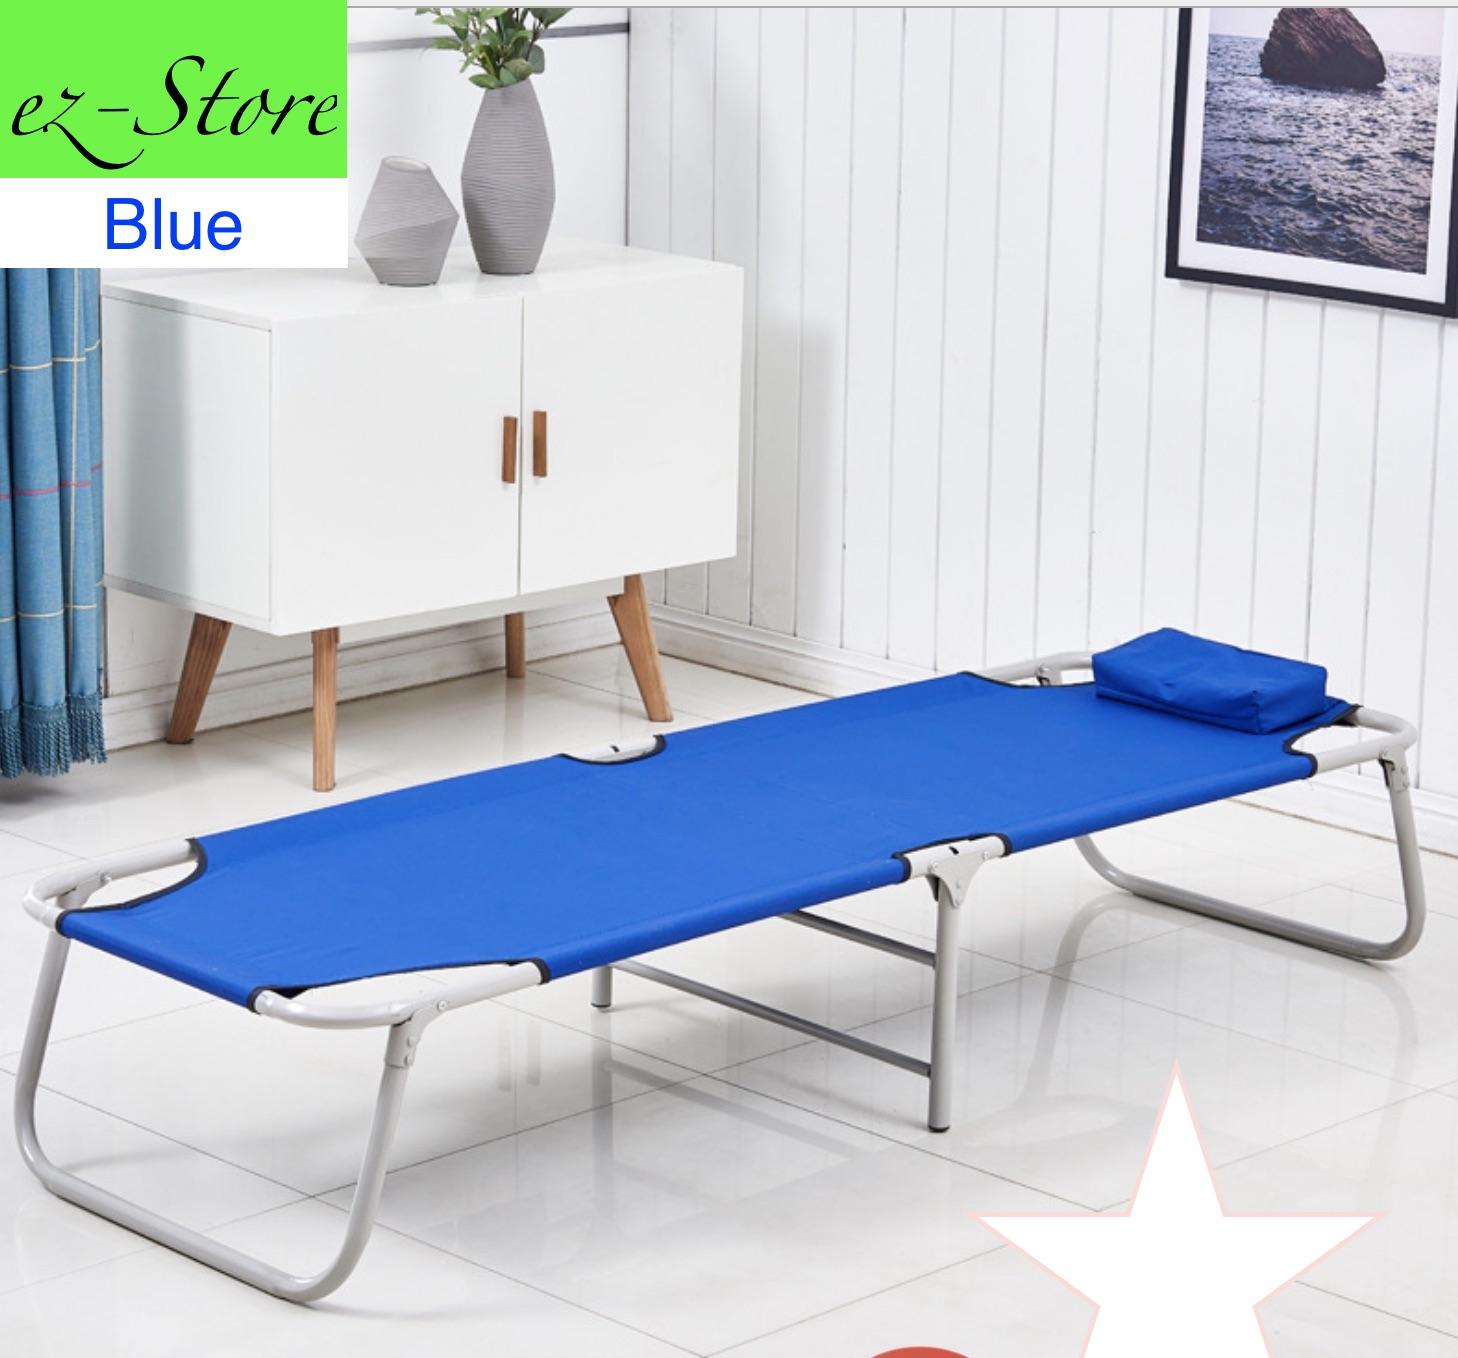 foldable bed/portable/single/ durable metal and canvas fabric /space saver/ hight quality/ light weight